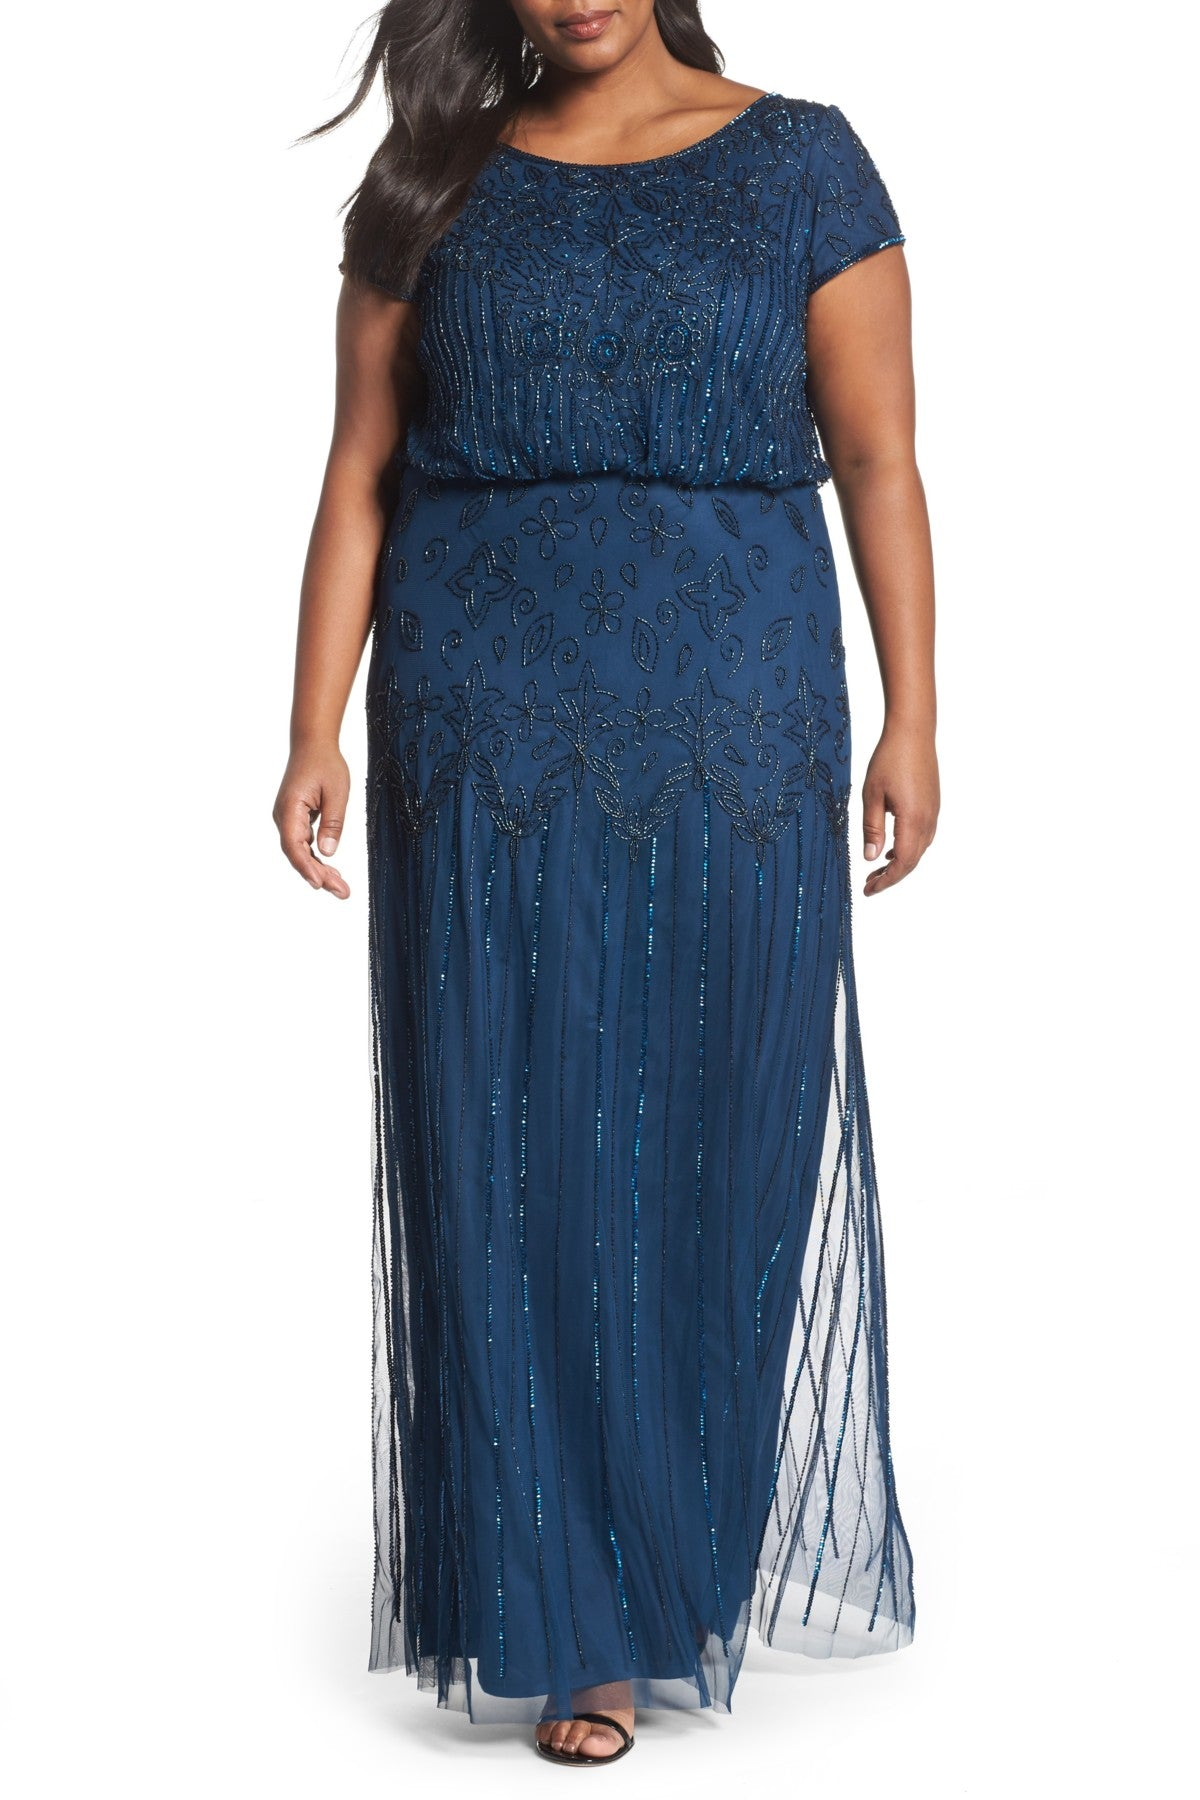 Deep Blue Modest Beaded Dress